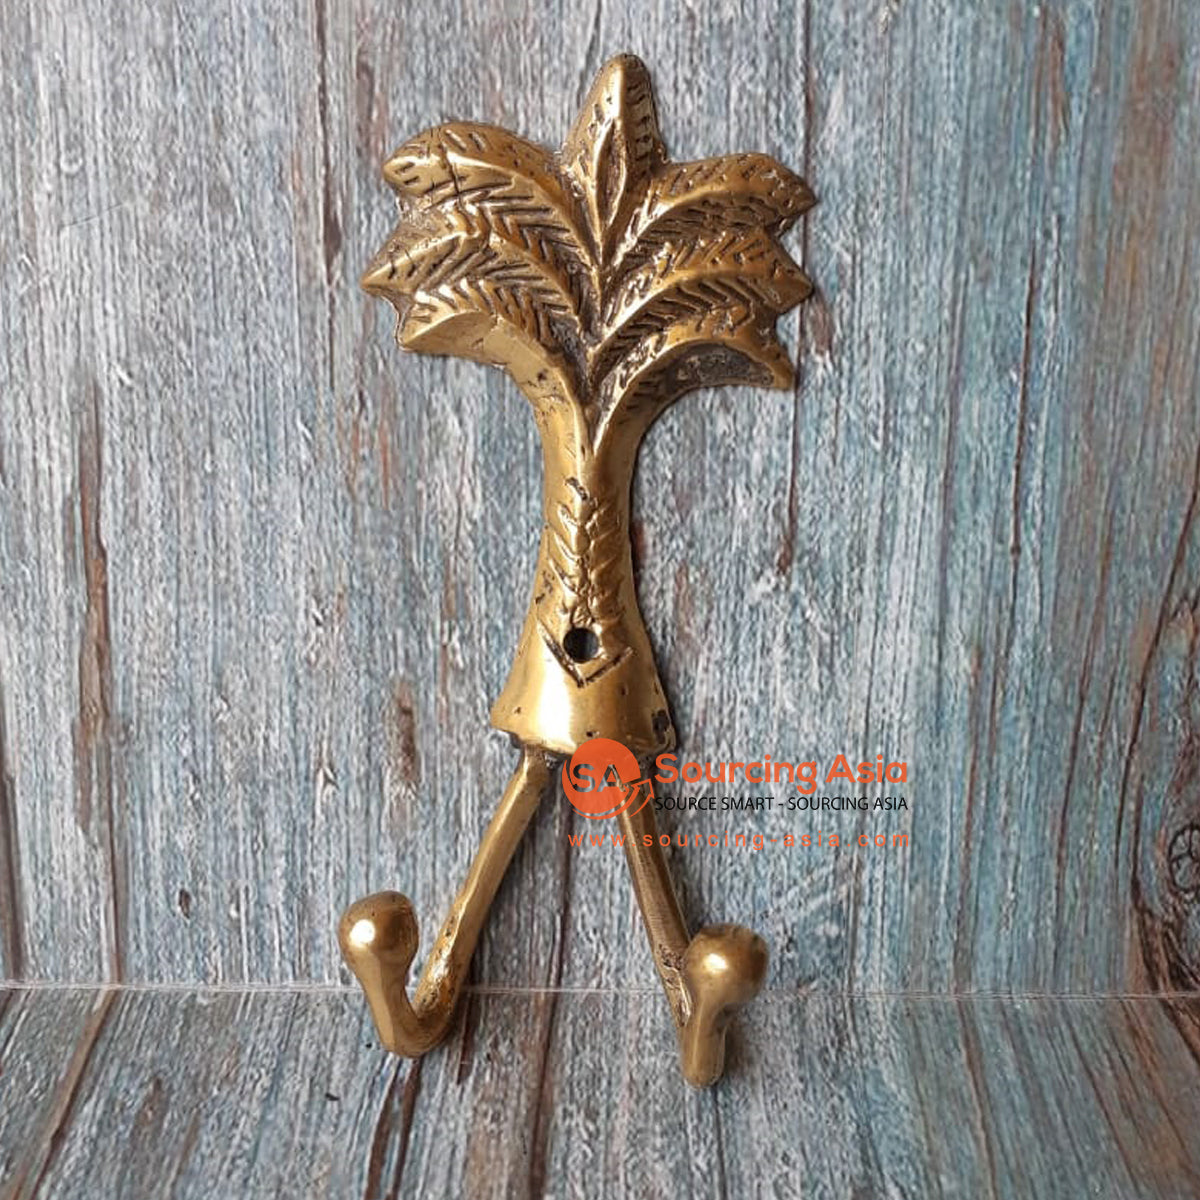 GB184 BRONZE PALM TREE WITH 2 HOOK